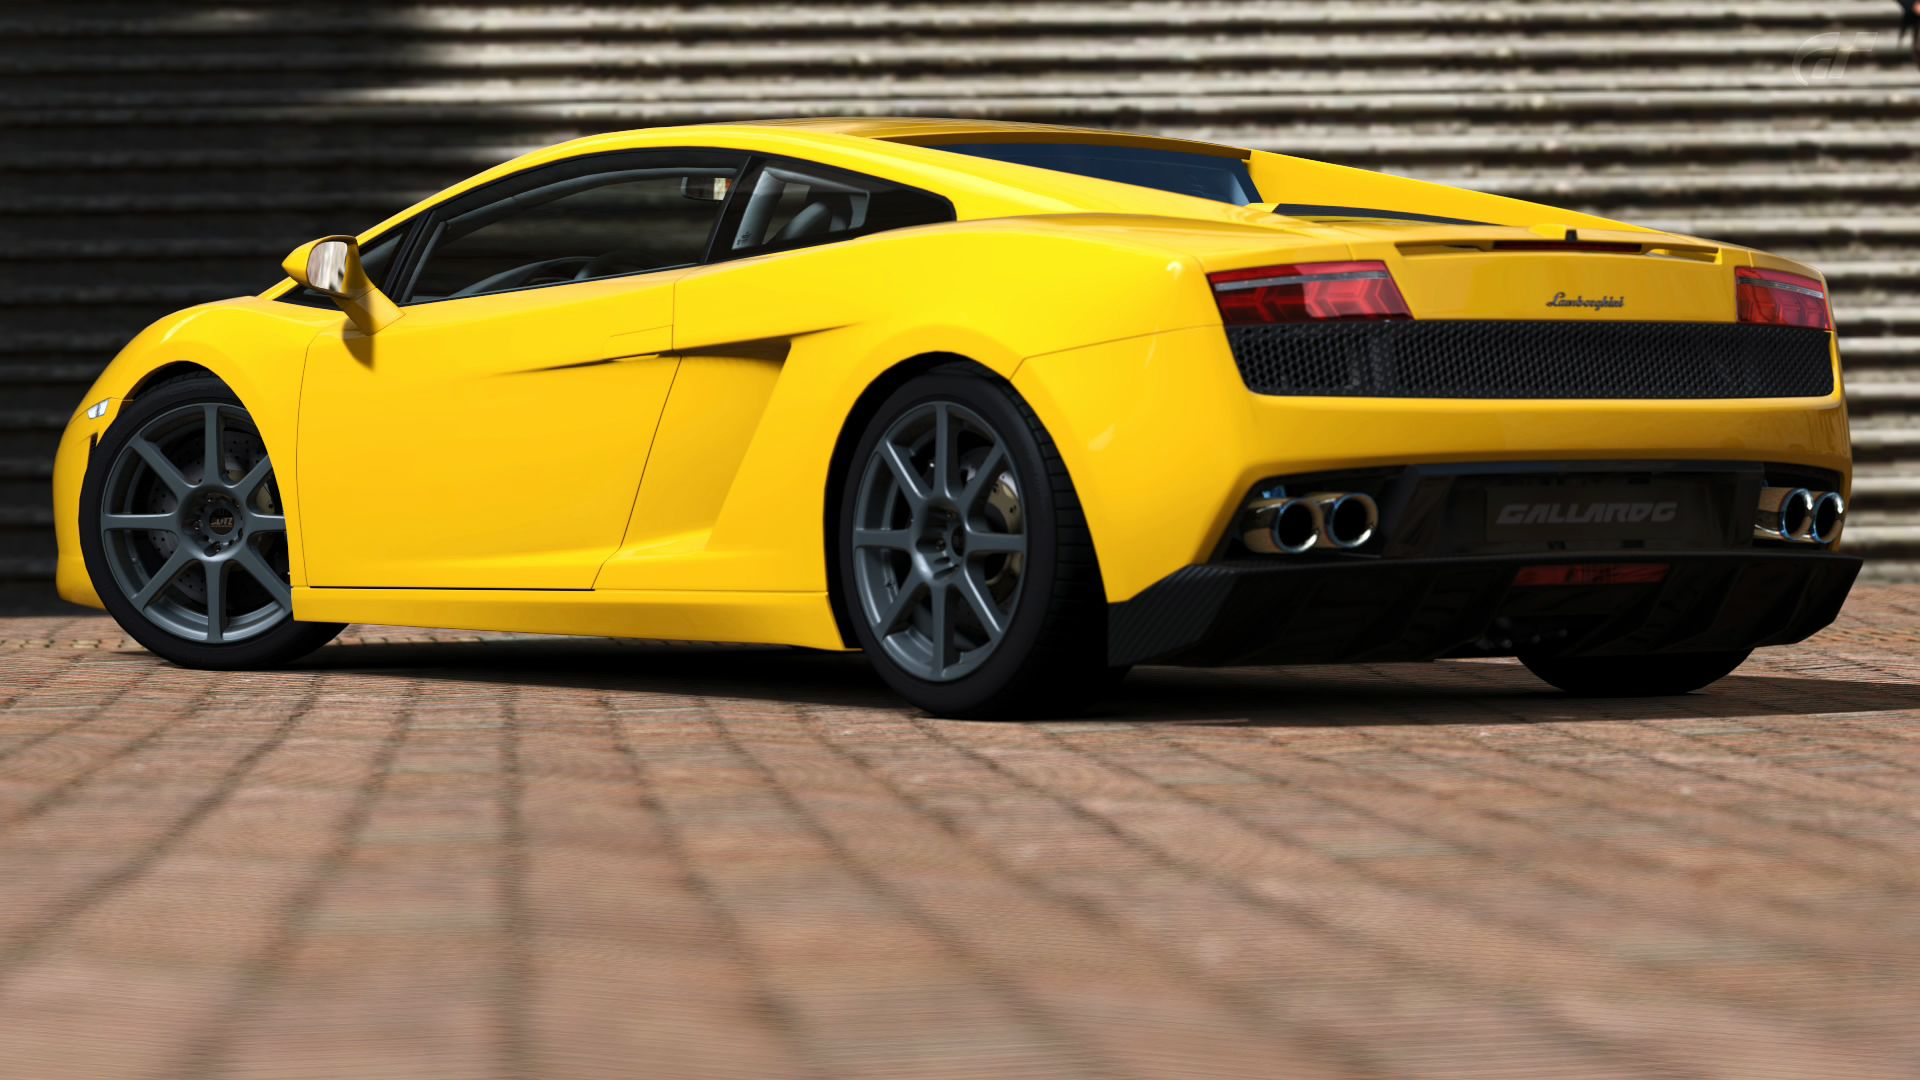 Merveilleux Hd Lamborghini Gallardo Wallpapers